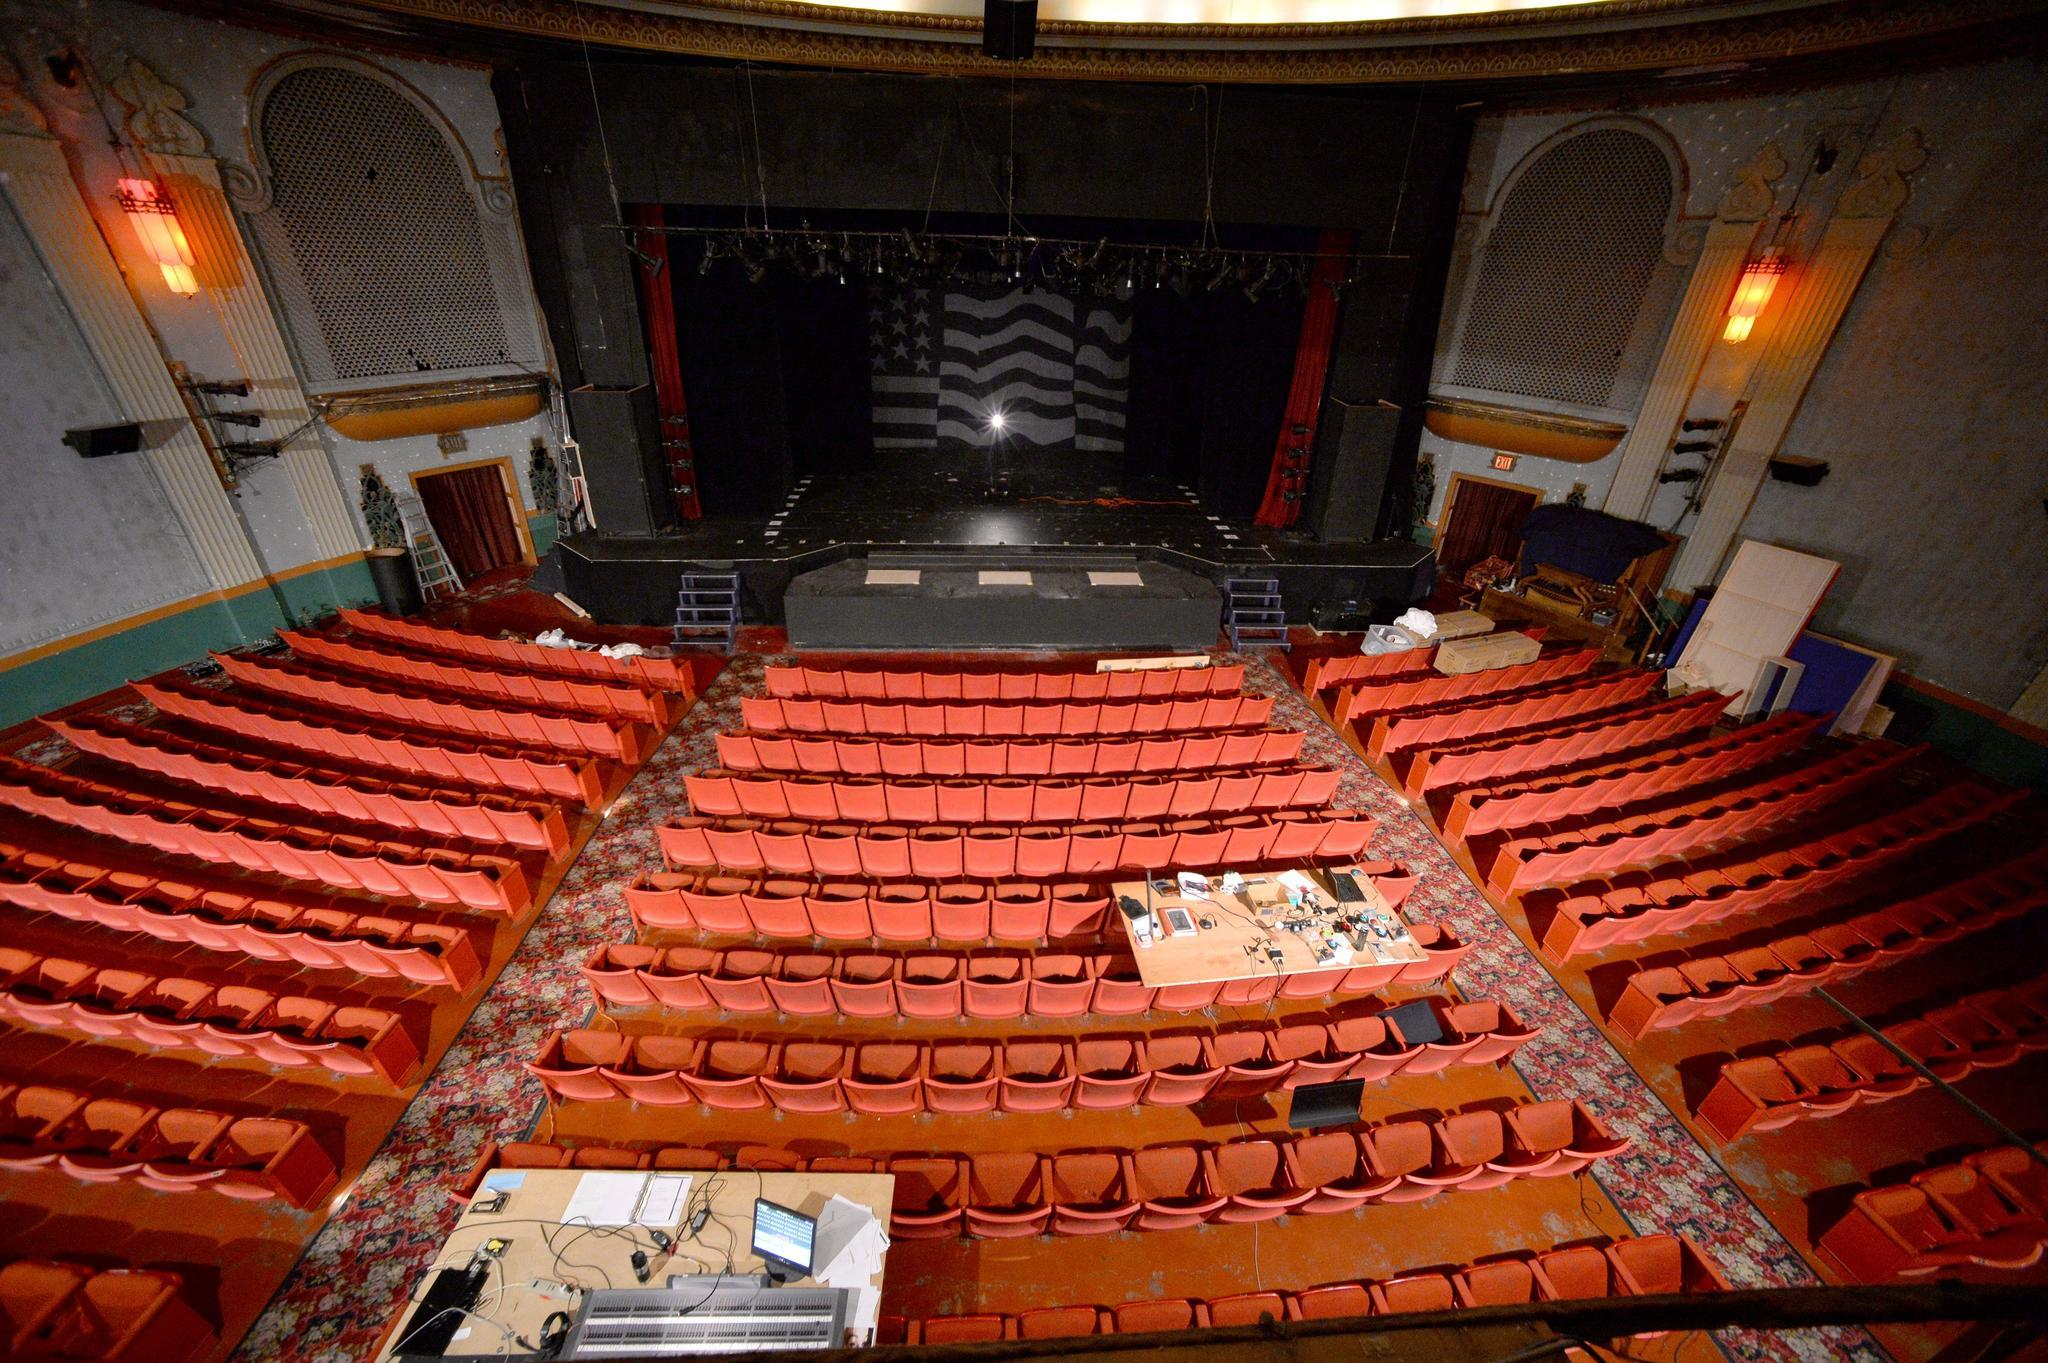 Civic theatre 39 s 5 5 million renovation project gets under way orlando sentinel for Capital home staging and design